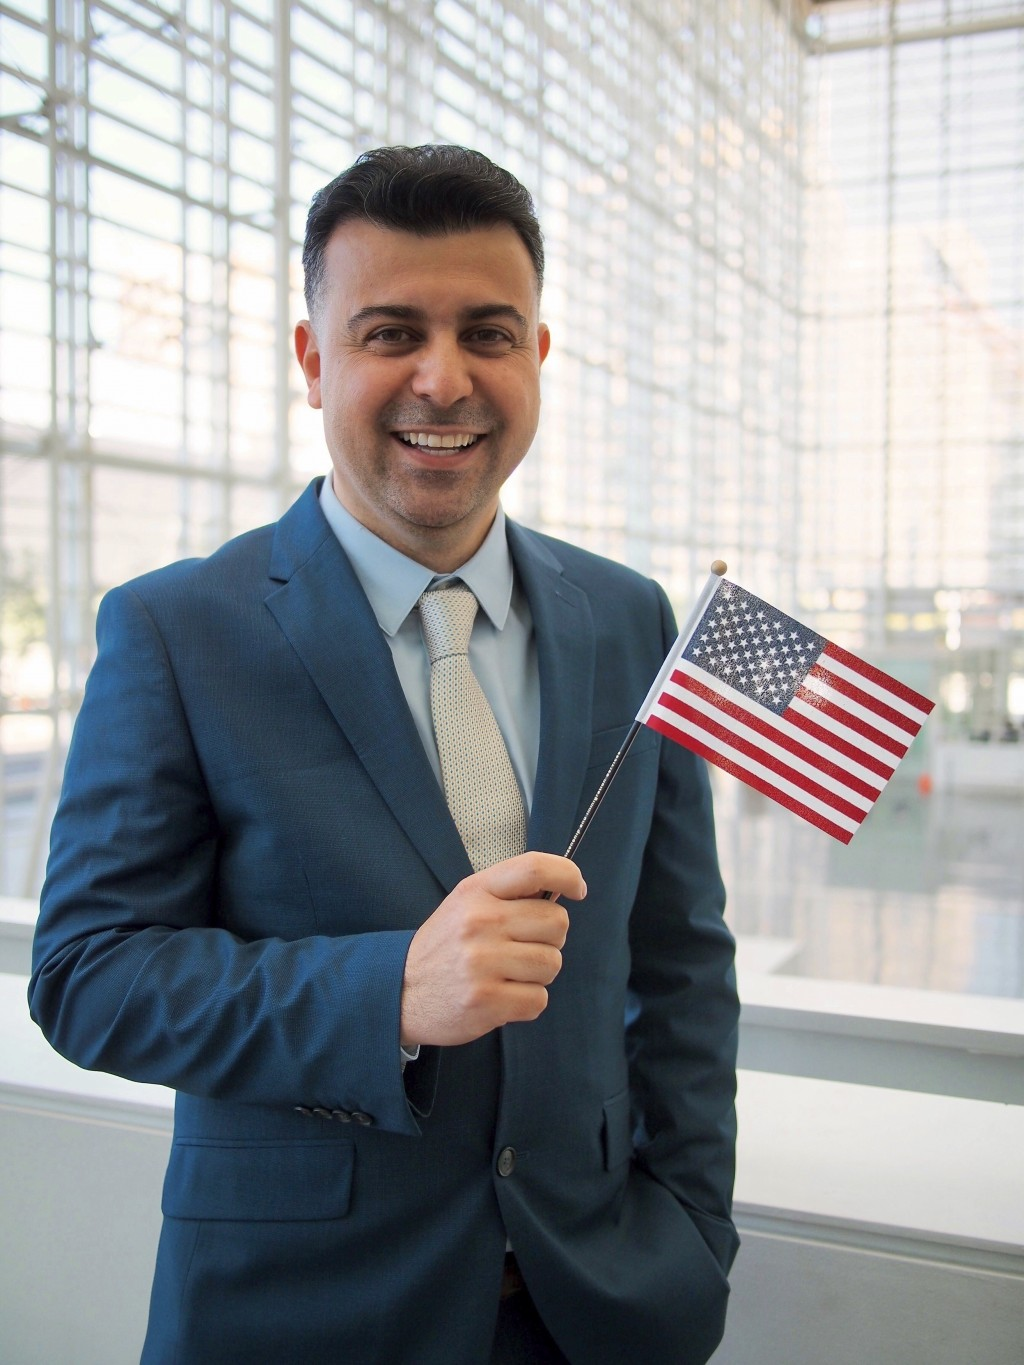 This September 2019 photo provided by Danielle Luna, shows Iraqi born refugee Bilal Alobaidi at his naturalization ceremony. Alobaidi, who arrived in ...